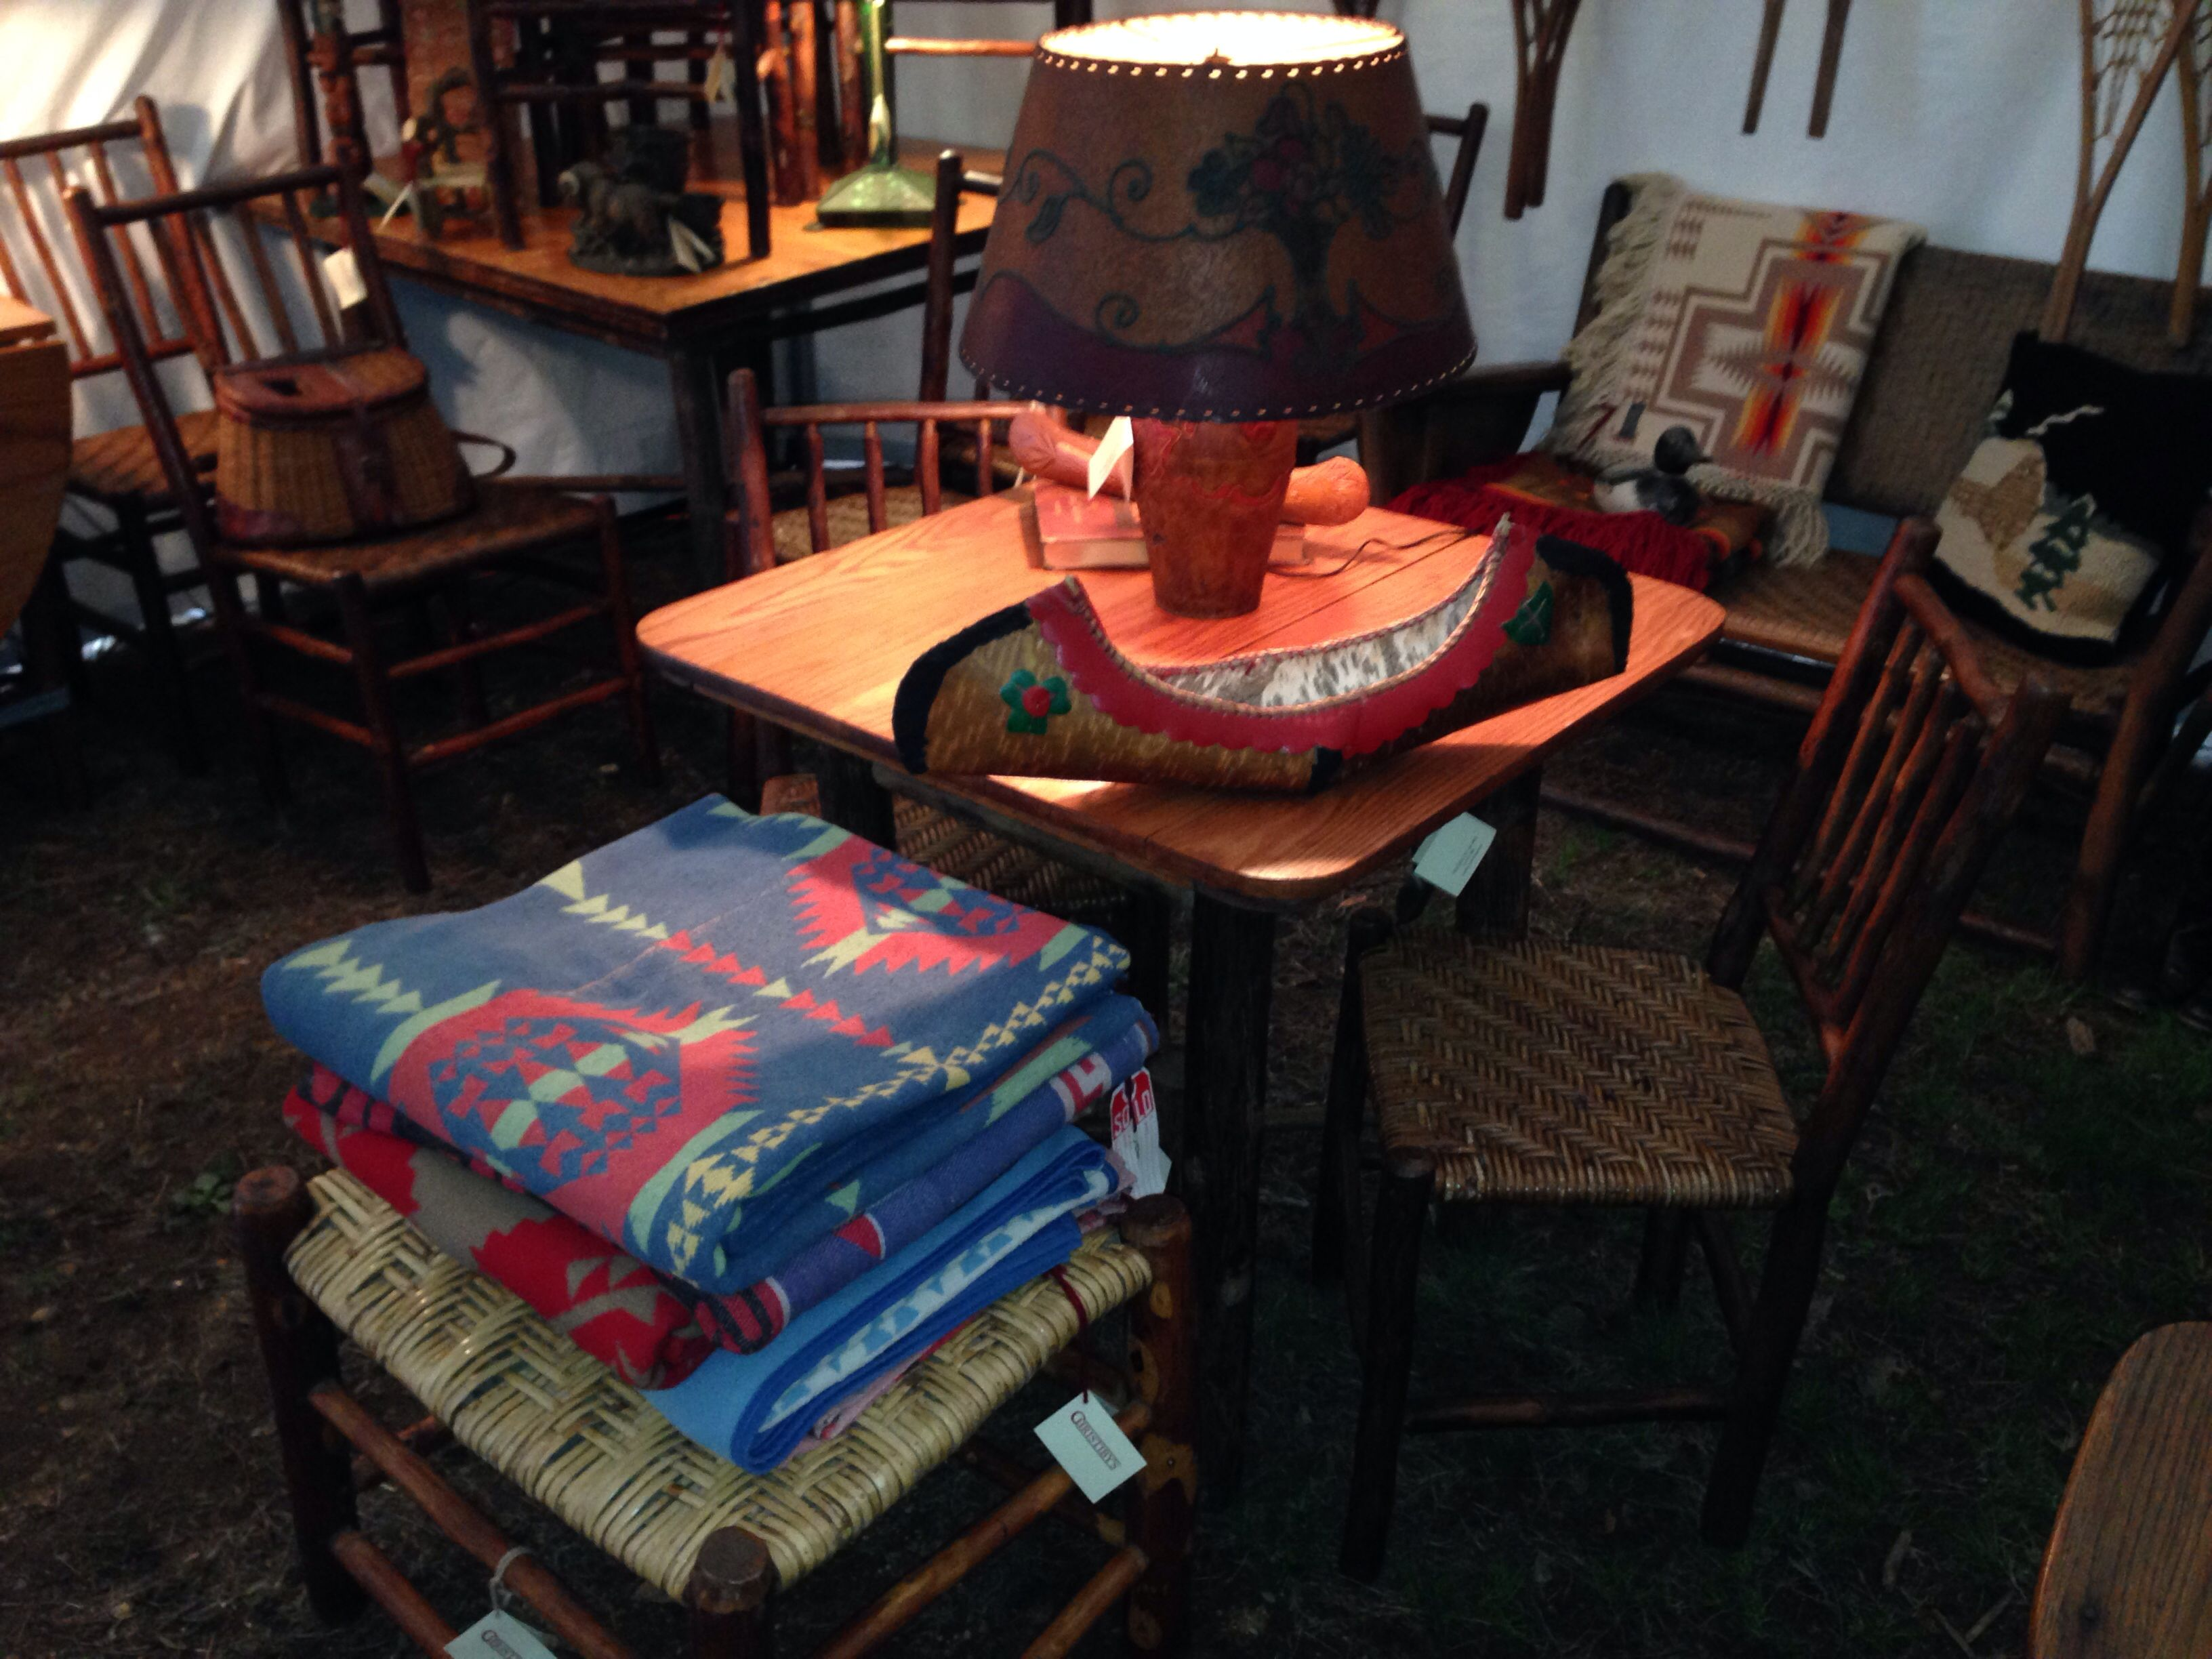 Camp blankets, Brimfield Antique Market, May, 2014, Christibys